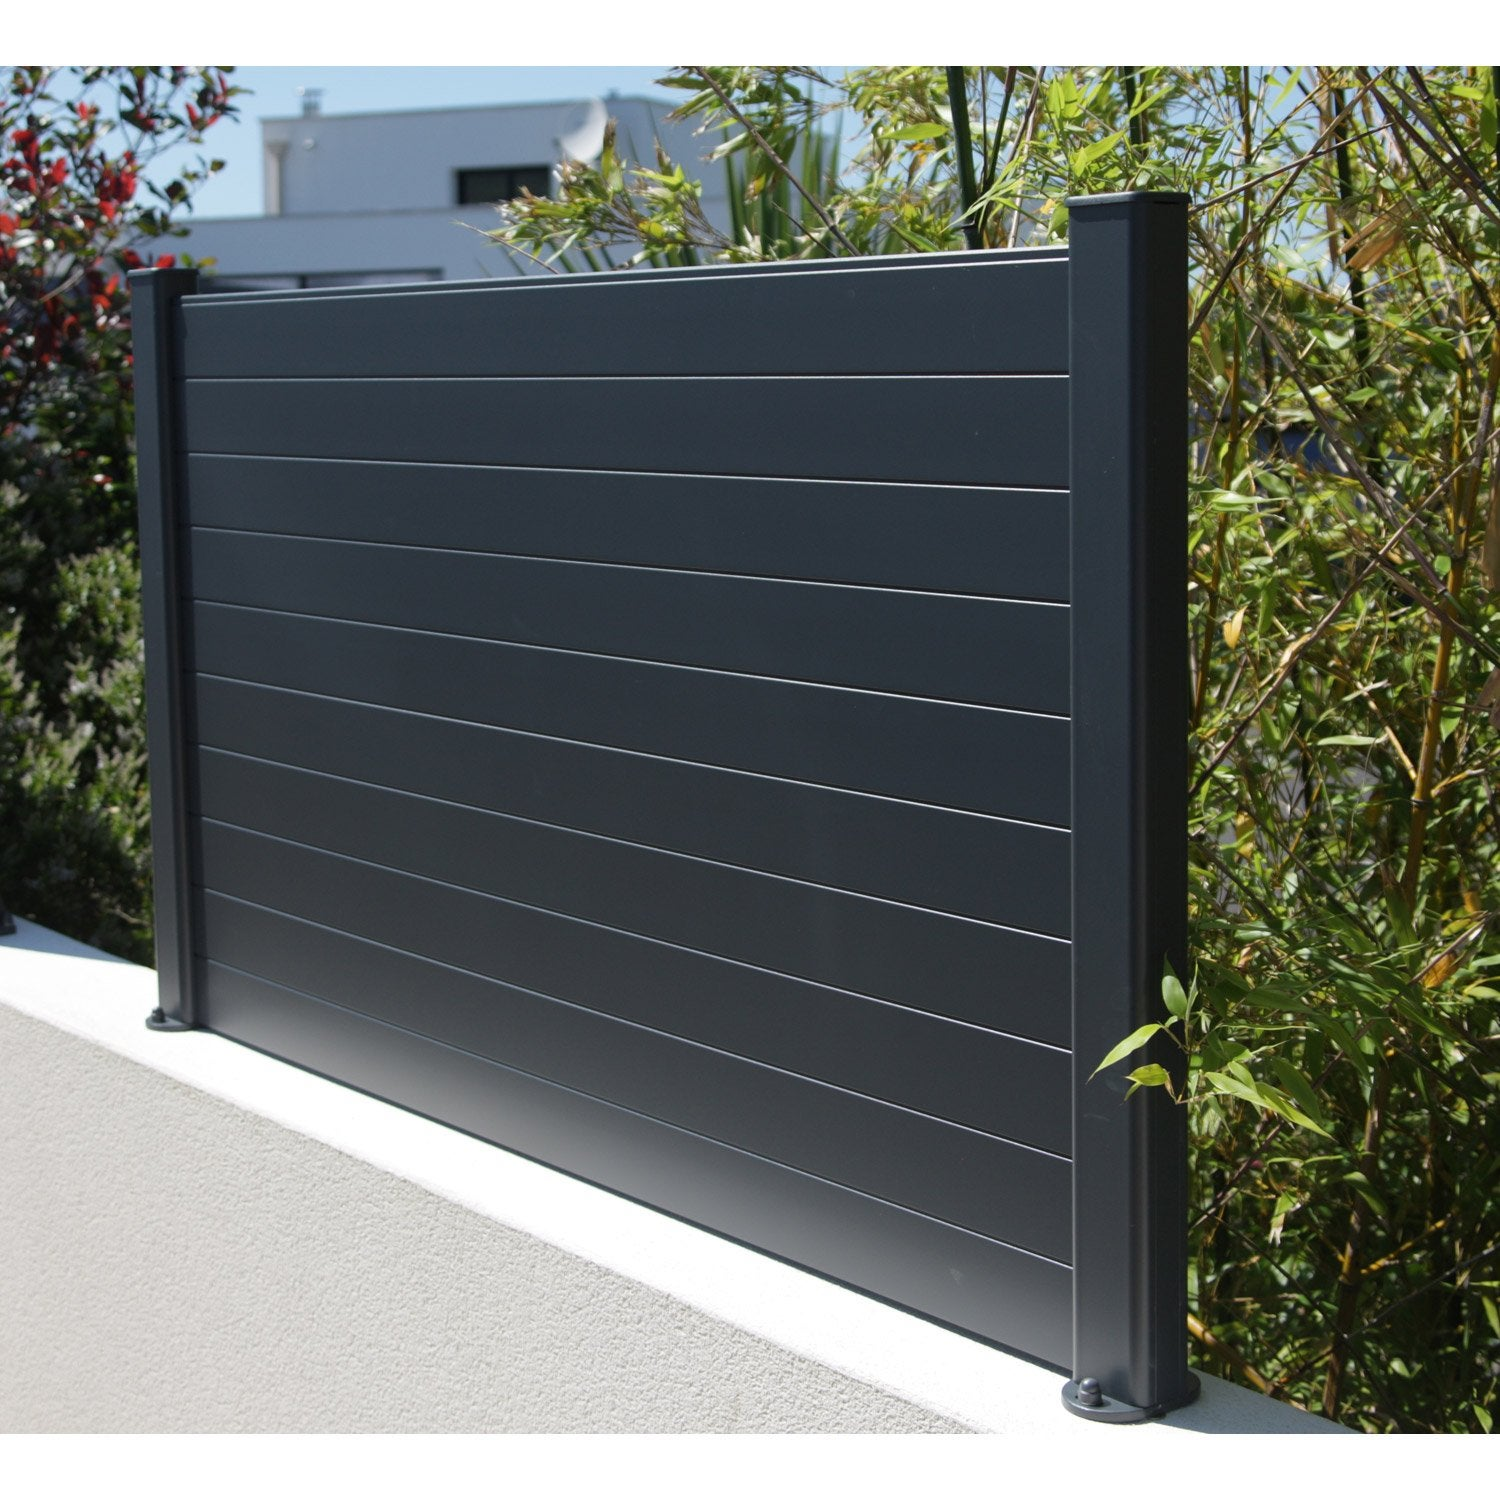 Cloture A Composer Aluminium Naterial Klos Up Gris Anthracite Cloture Aluminium Cloture Maison Cloture Jardin